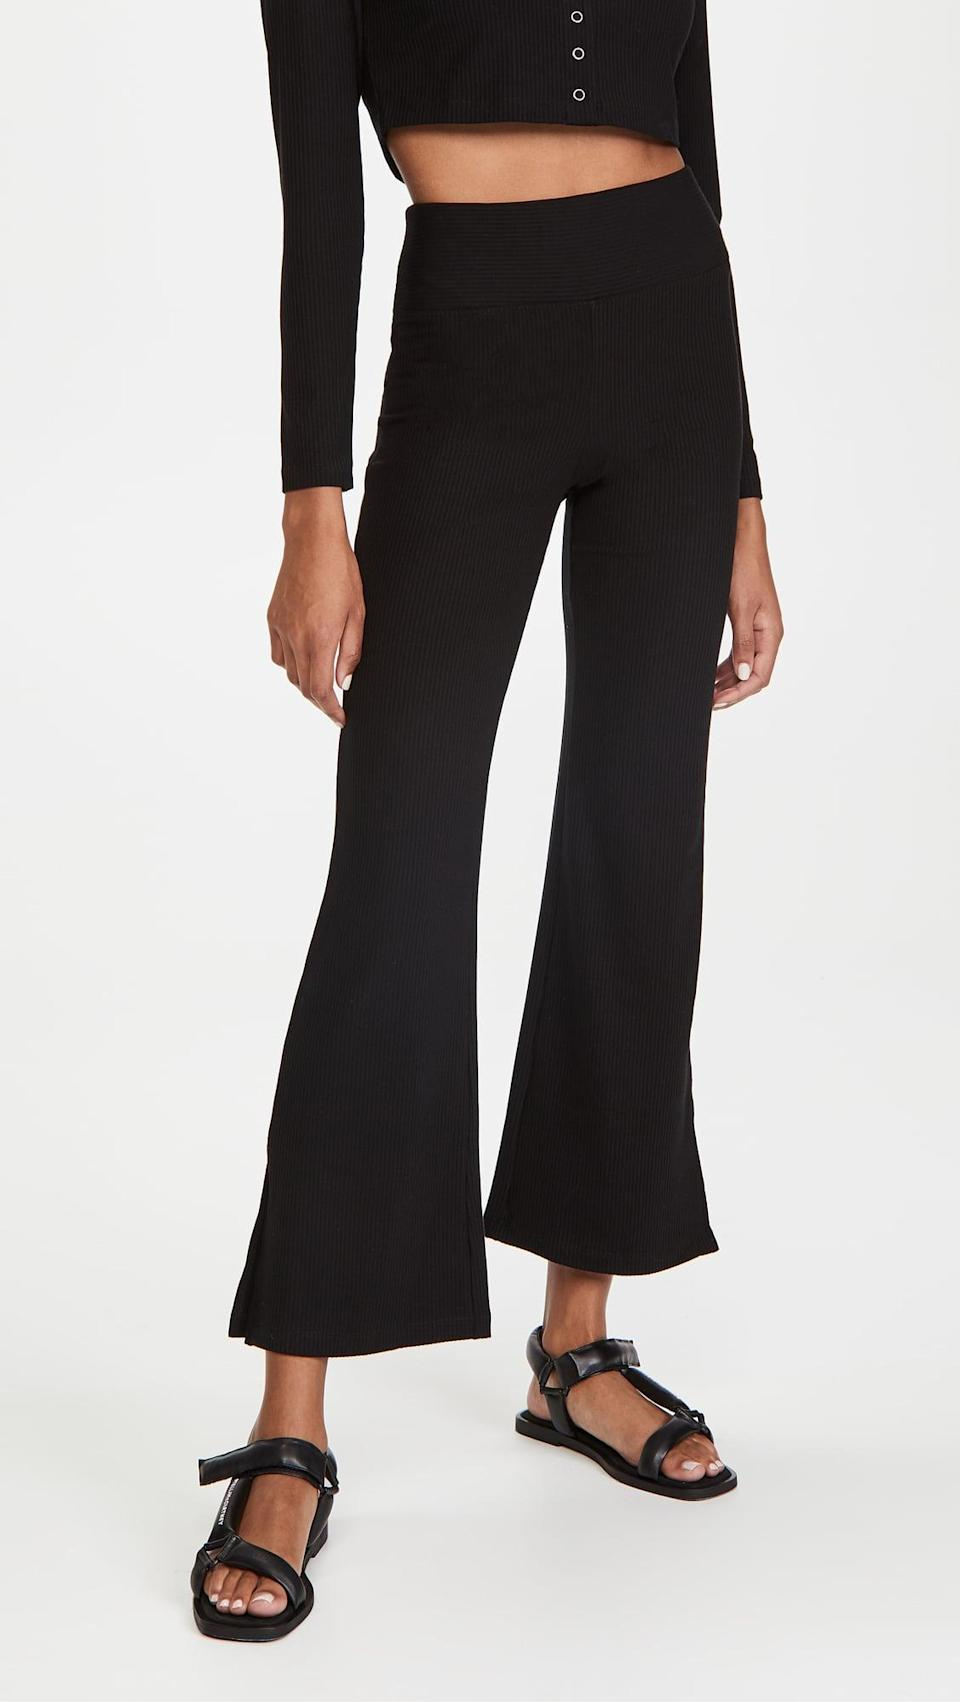 <p>Stretchy pants are always a must and these <span>Year of Ours Flight Pants</span> ($90) are at the top of my wish list.</p>